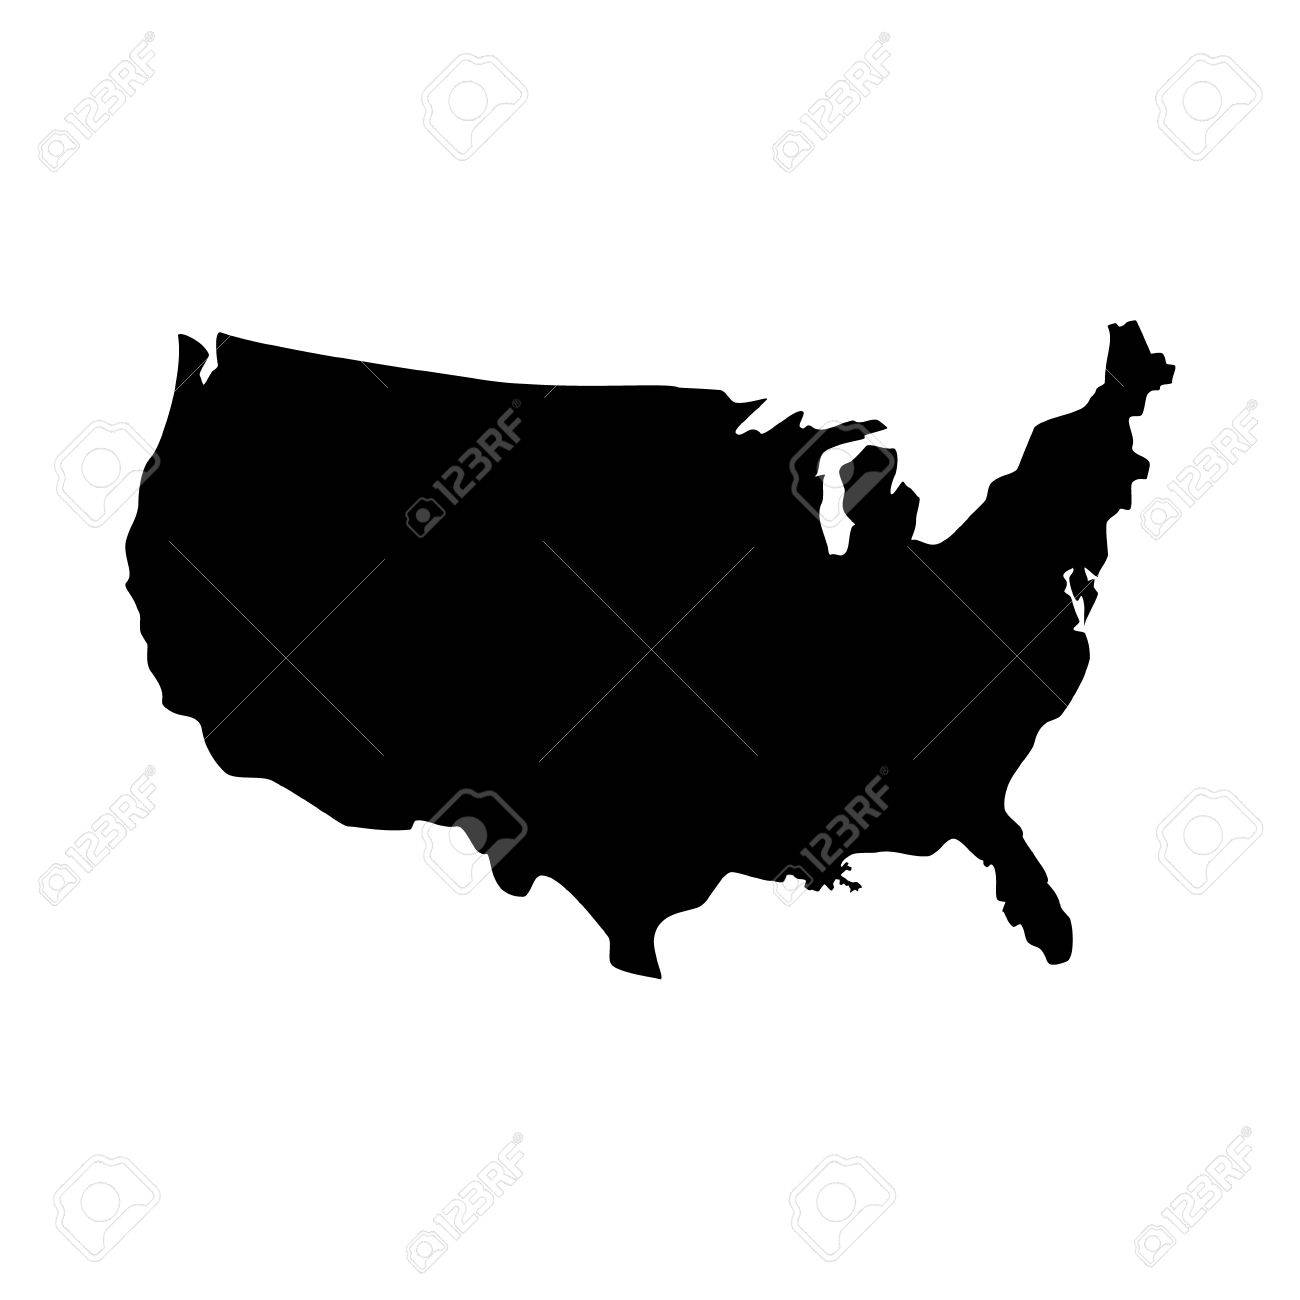 Usa Map Black.Vector Illustration Black Silhouette Map Of United States Of